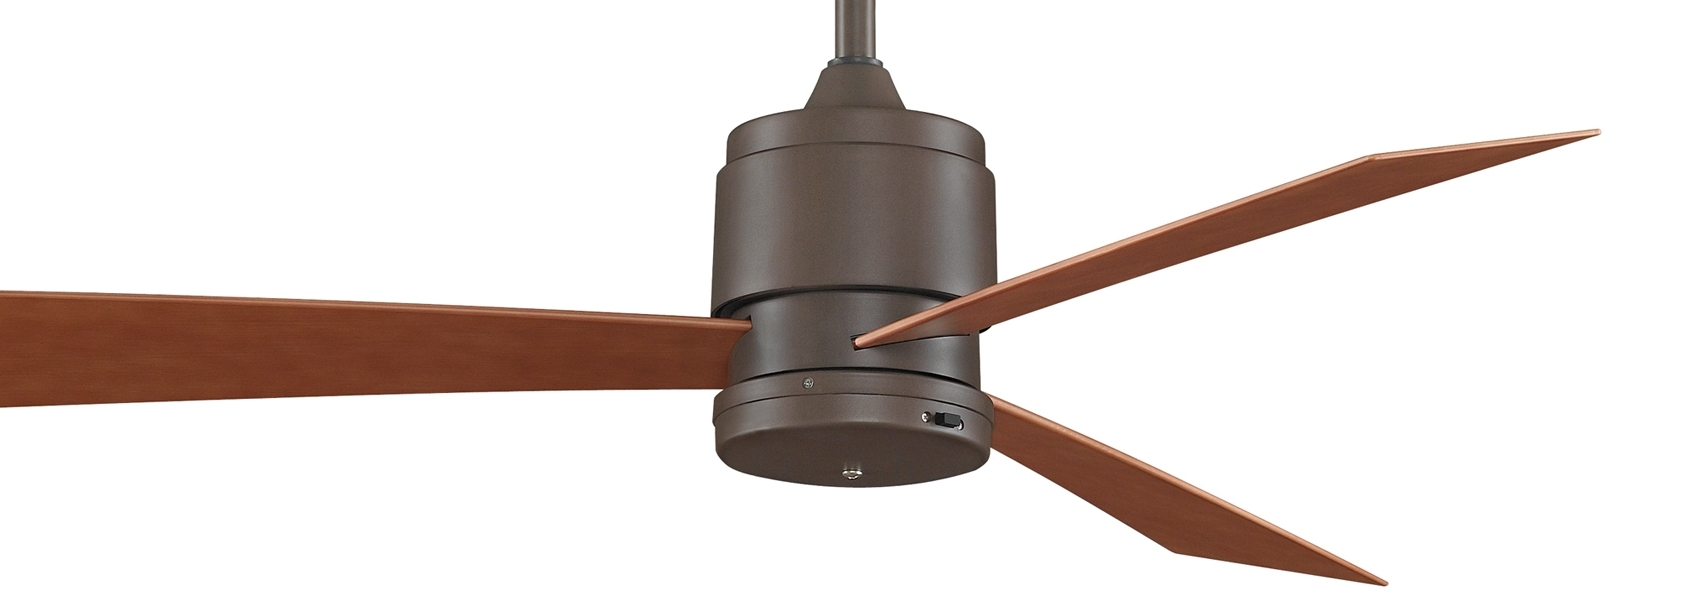 Gold Coast Outdoor Ceiling Fans Regarding Trendy Gold Coast Ceiling Fans (View 6 of 20)